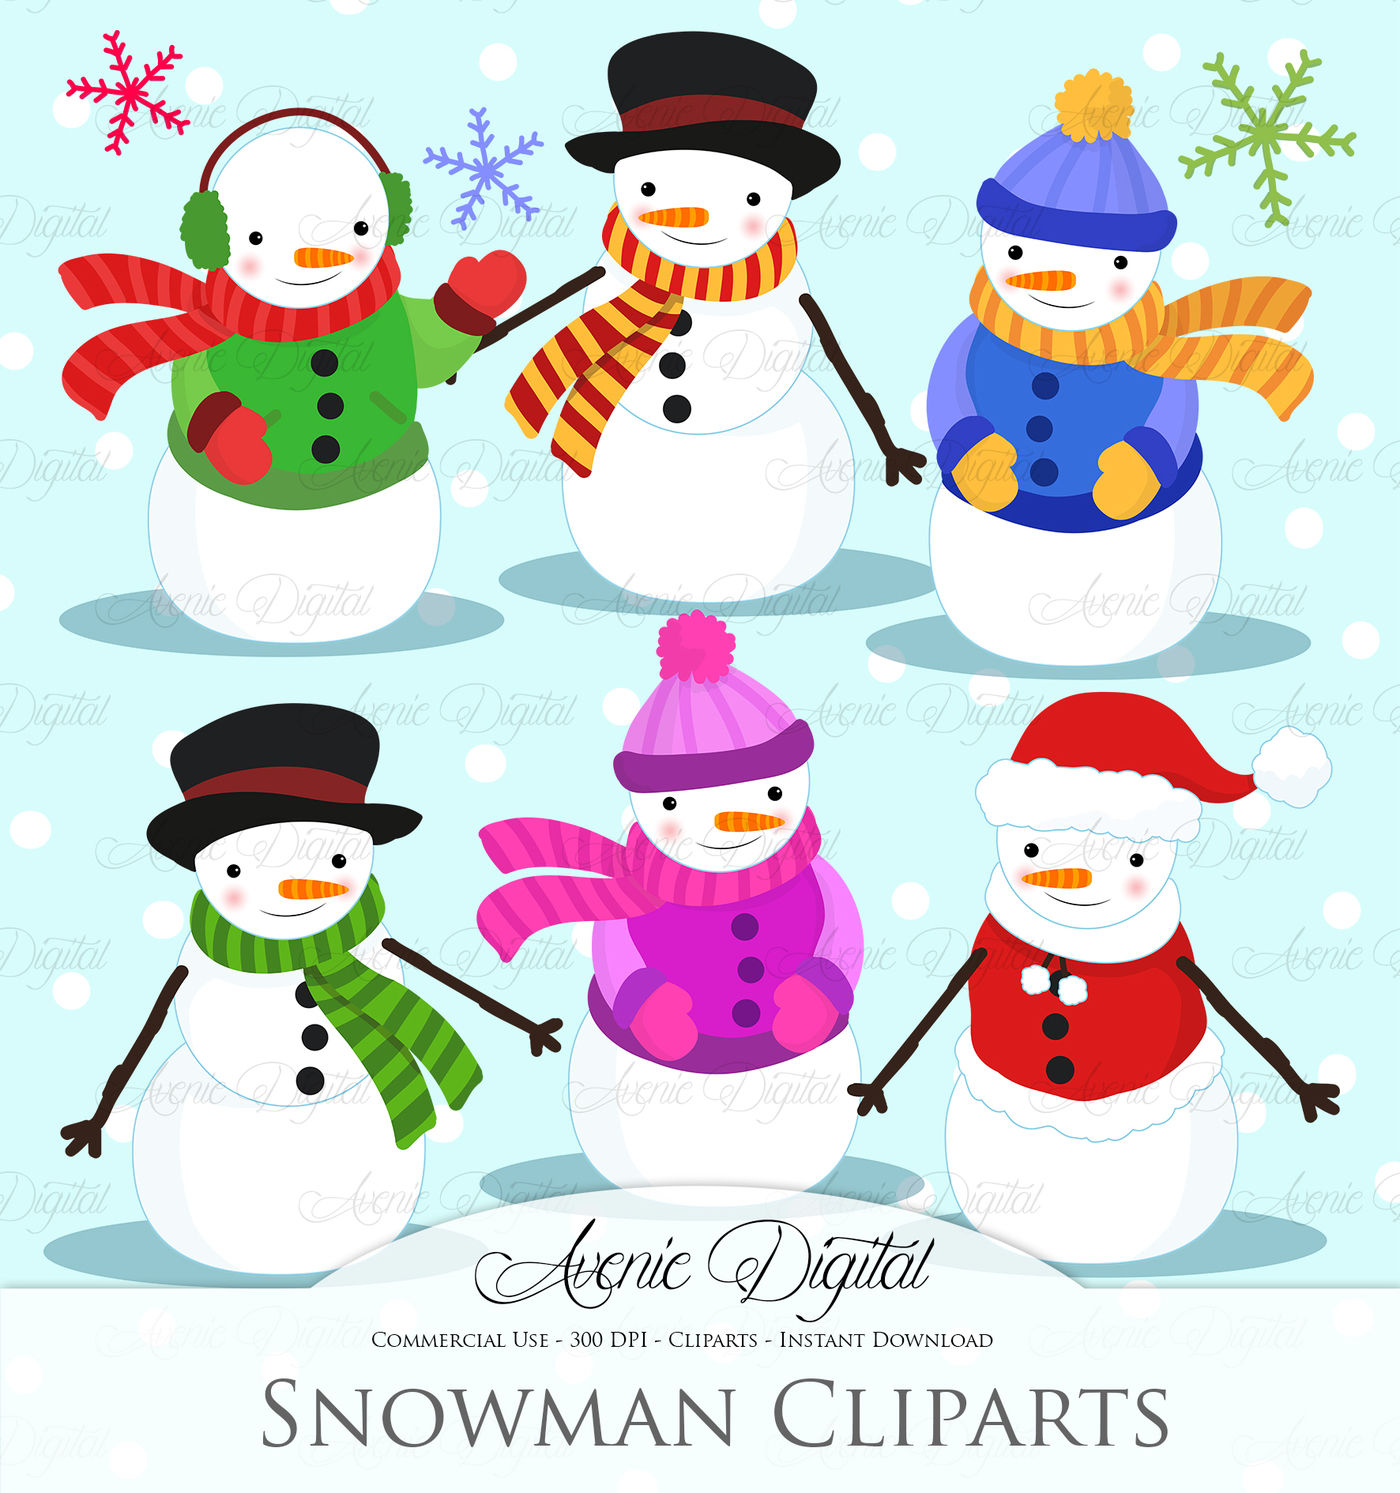 Christmas Snowman Clipart Vectors By Aveniedigital